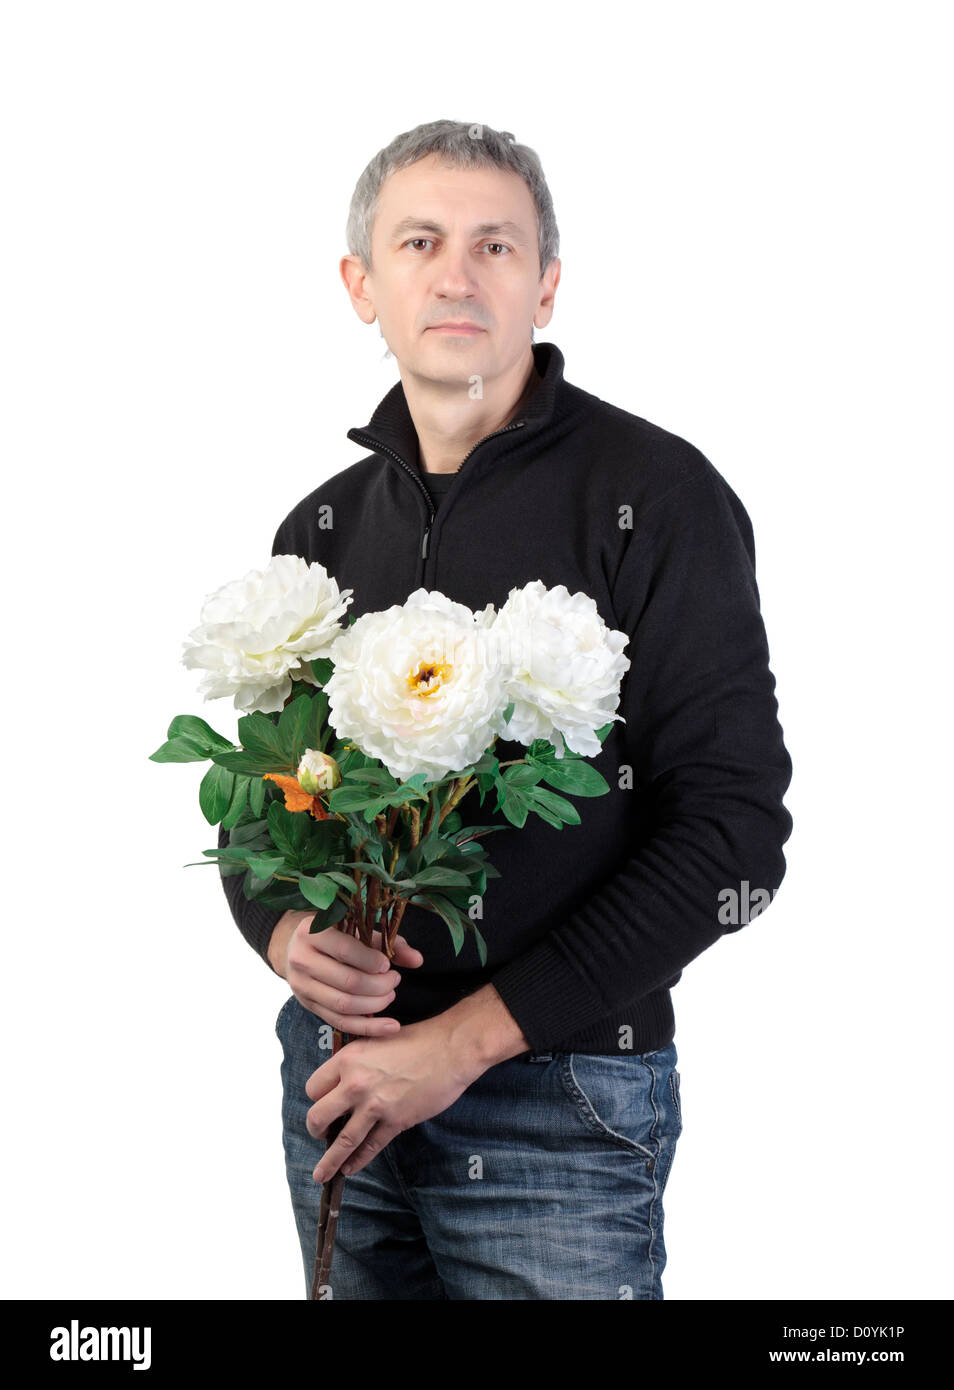 Fantastic man flower bouquet photos wedding and flowers ispiration guy flower bouquet thin blog izmirmasajfo Gallery